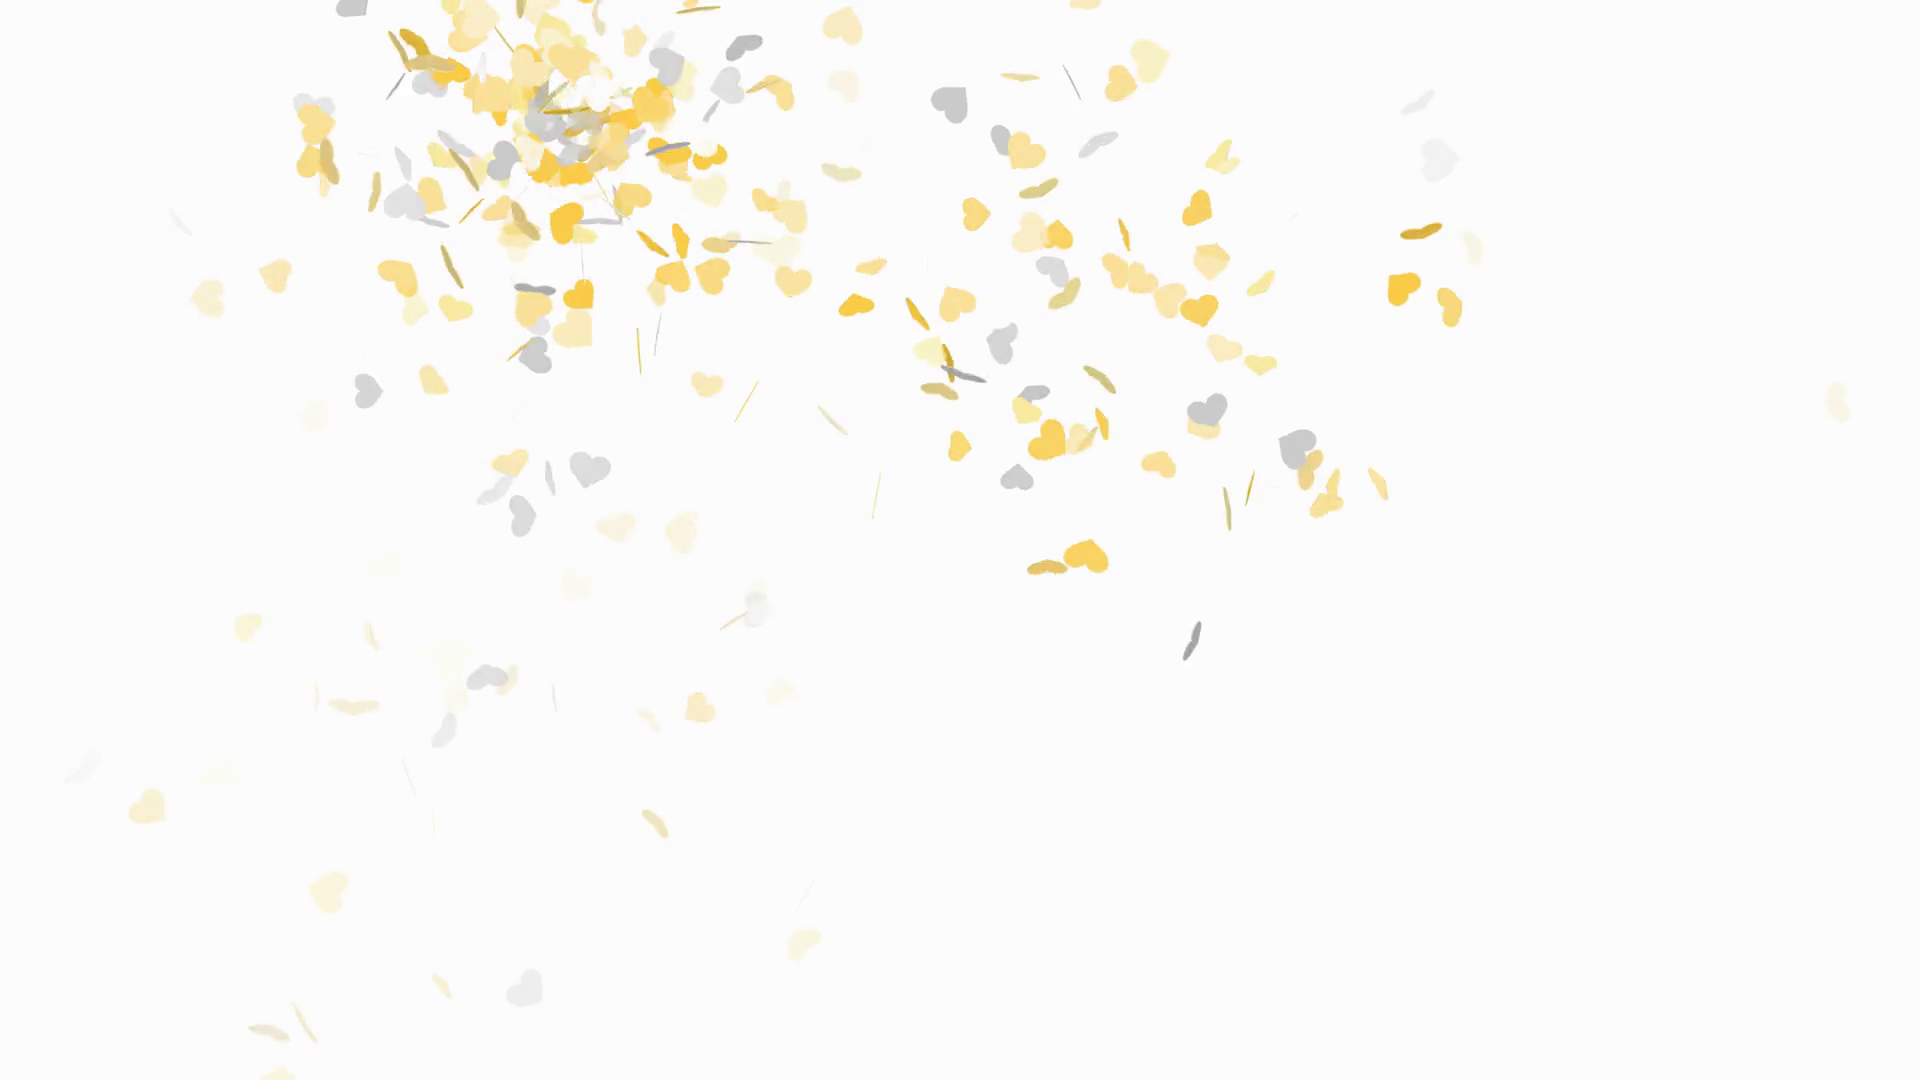 Gold and silver heart shape confetti on white background.